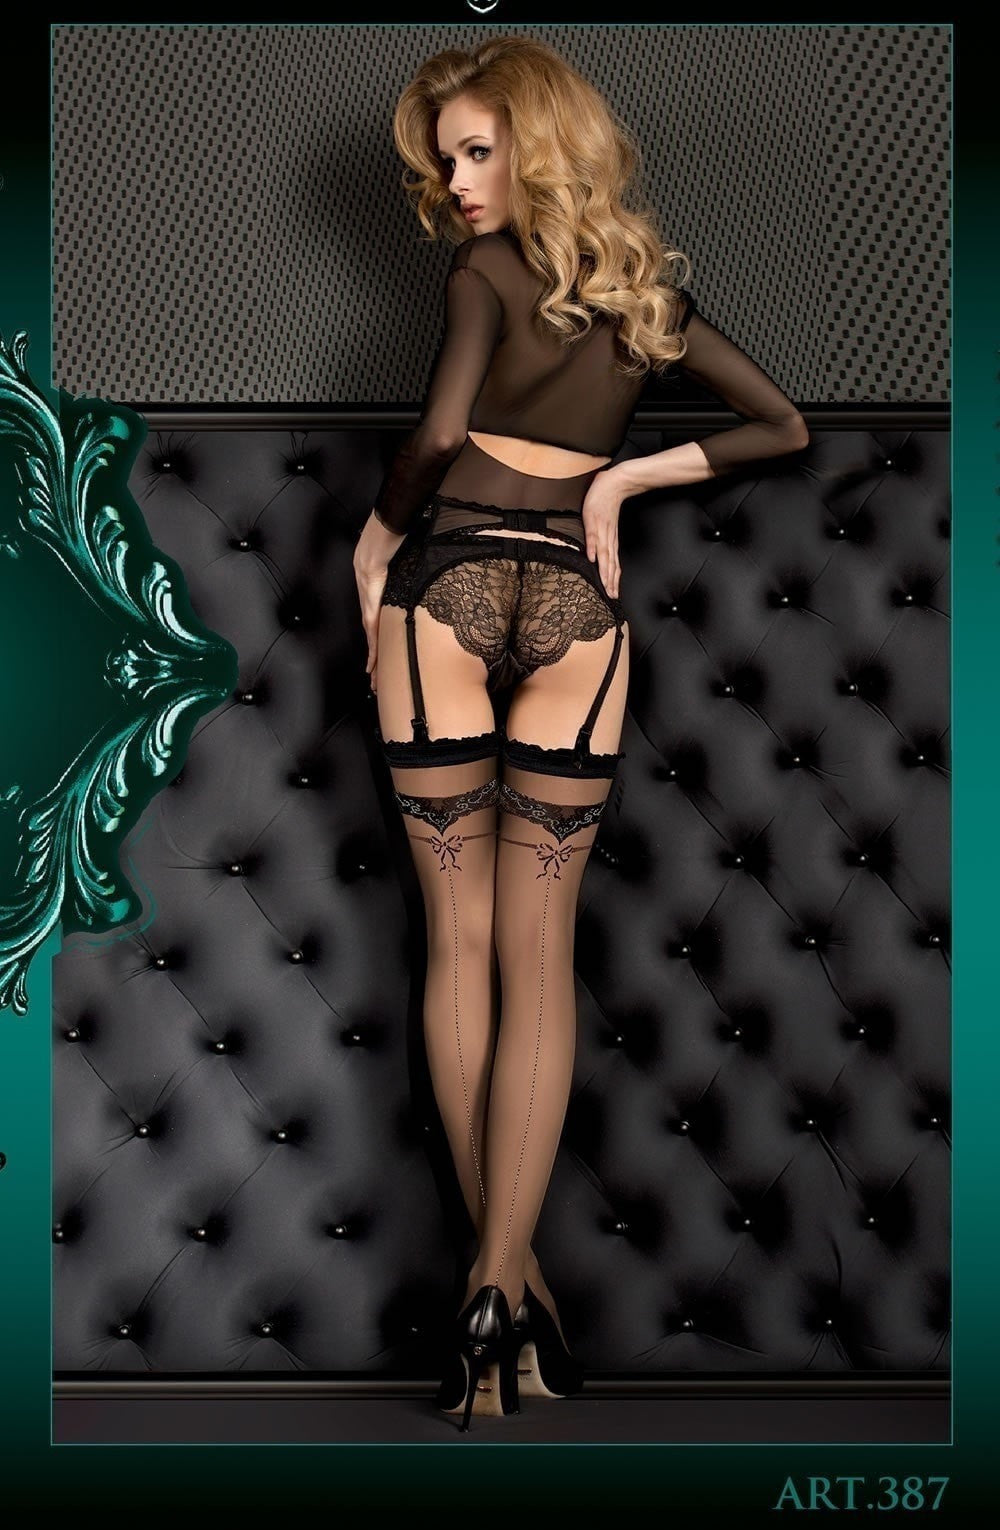 Ballerina Hold Ups 387 (Black) - Hold Up Stockings - Ballerina - Charm and Lace Boutique